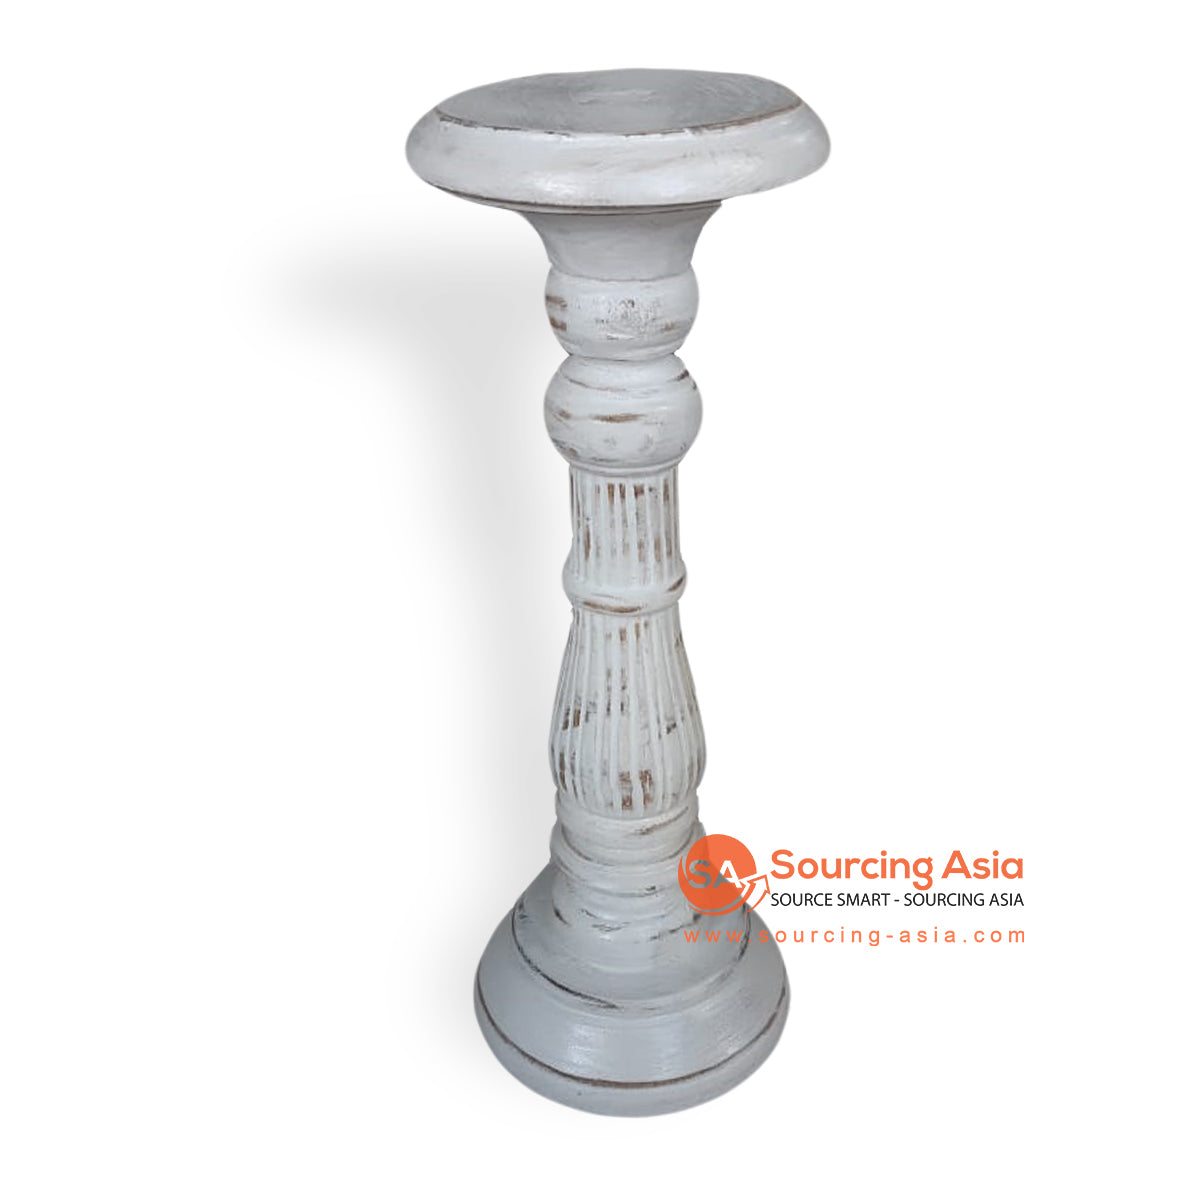 CHWD023-1 CANDLE HOLDER